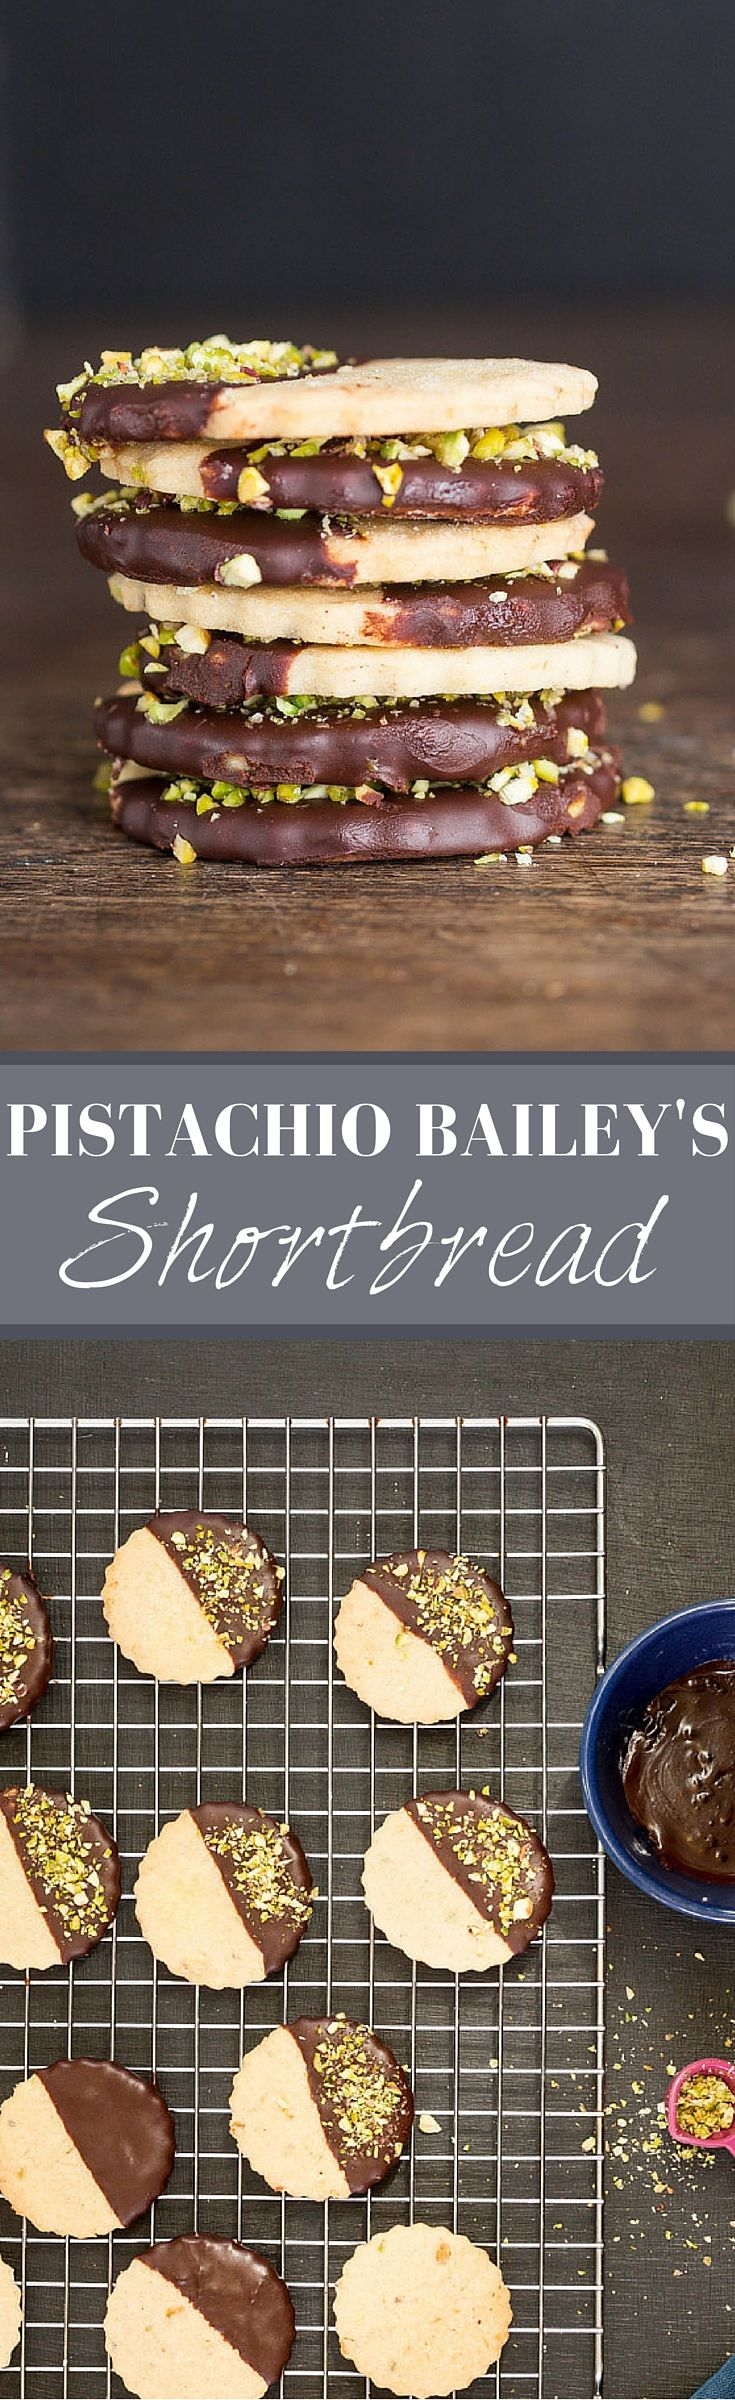 Pistachio Baileys Shortbread | Recipes From A Pantry                                                                                                                                                                                 More